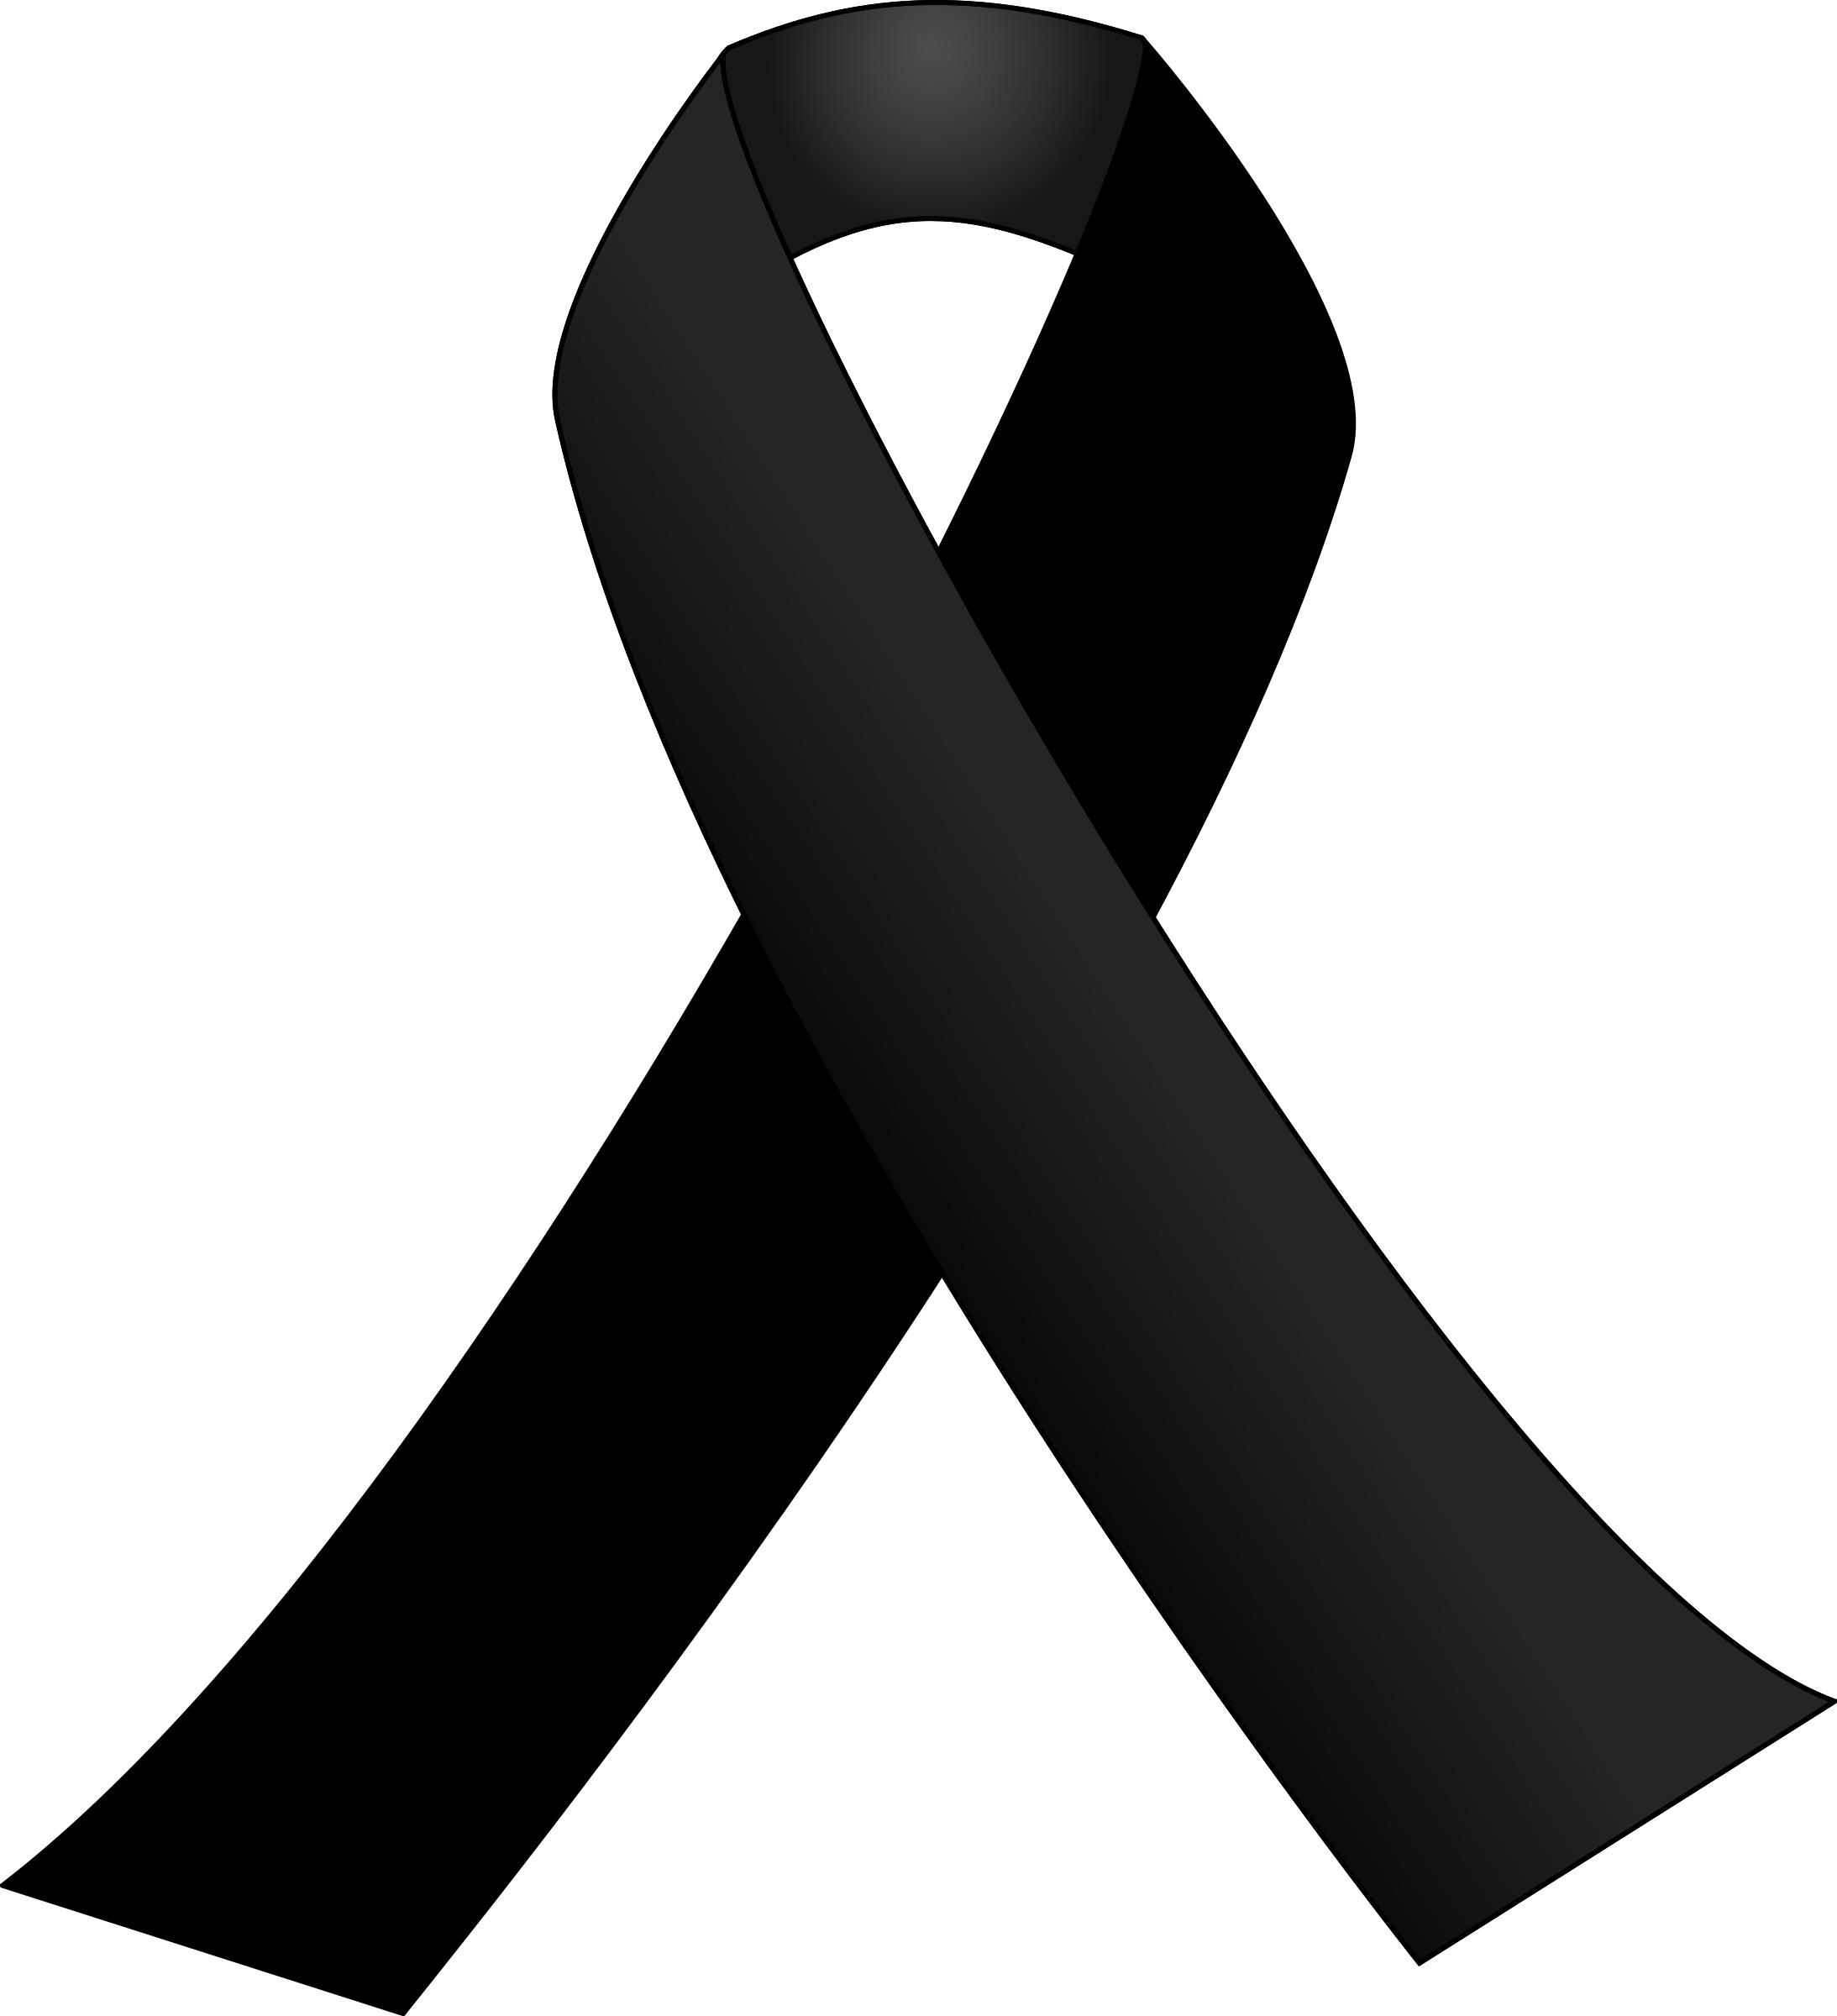 Black ribbon by J_Alves